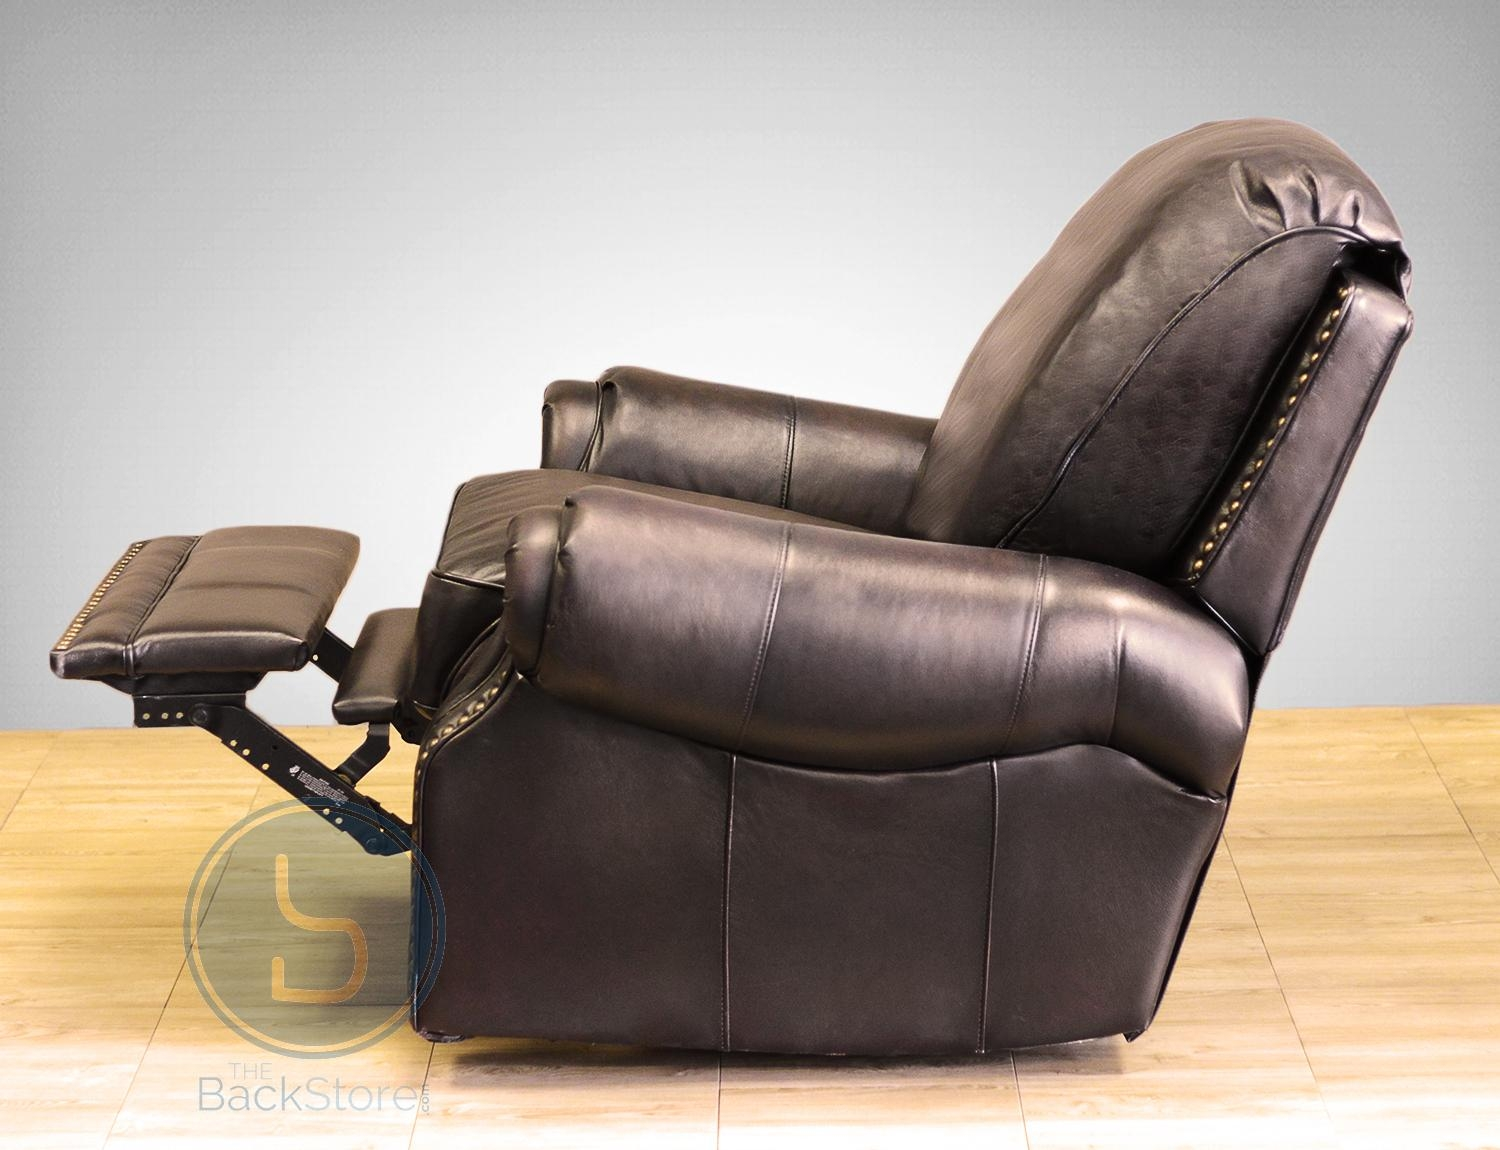 Barcalounger Premier Ii Leather Recliner Chair – Leather Recliner Throughout Barcalounger Sofas (Image 14 of 20)